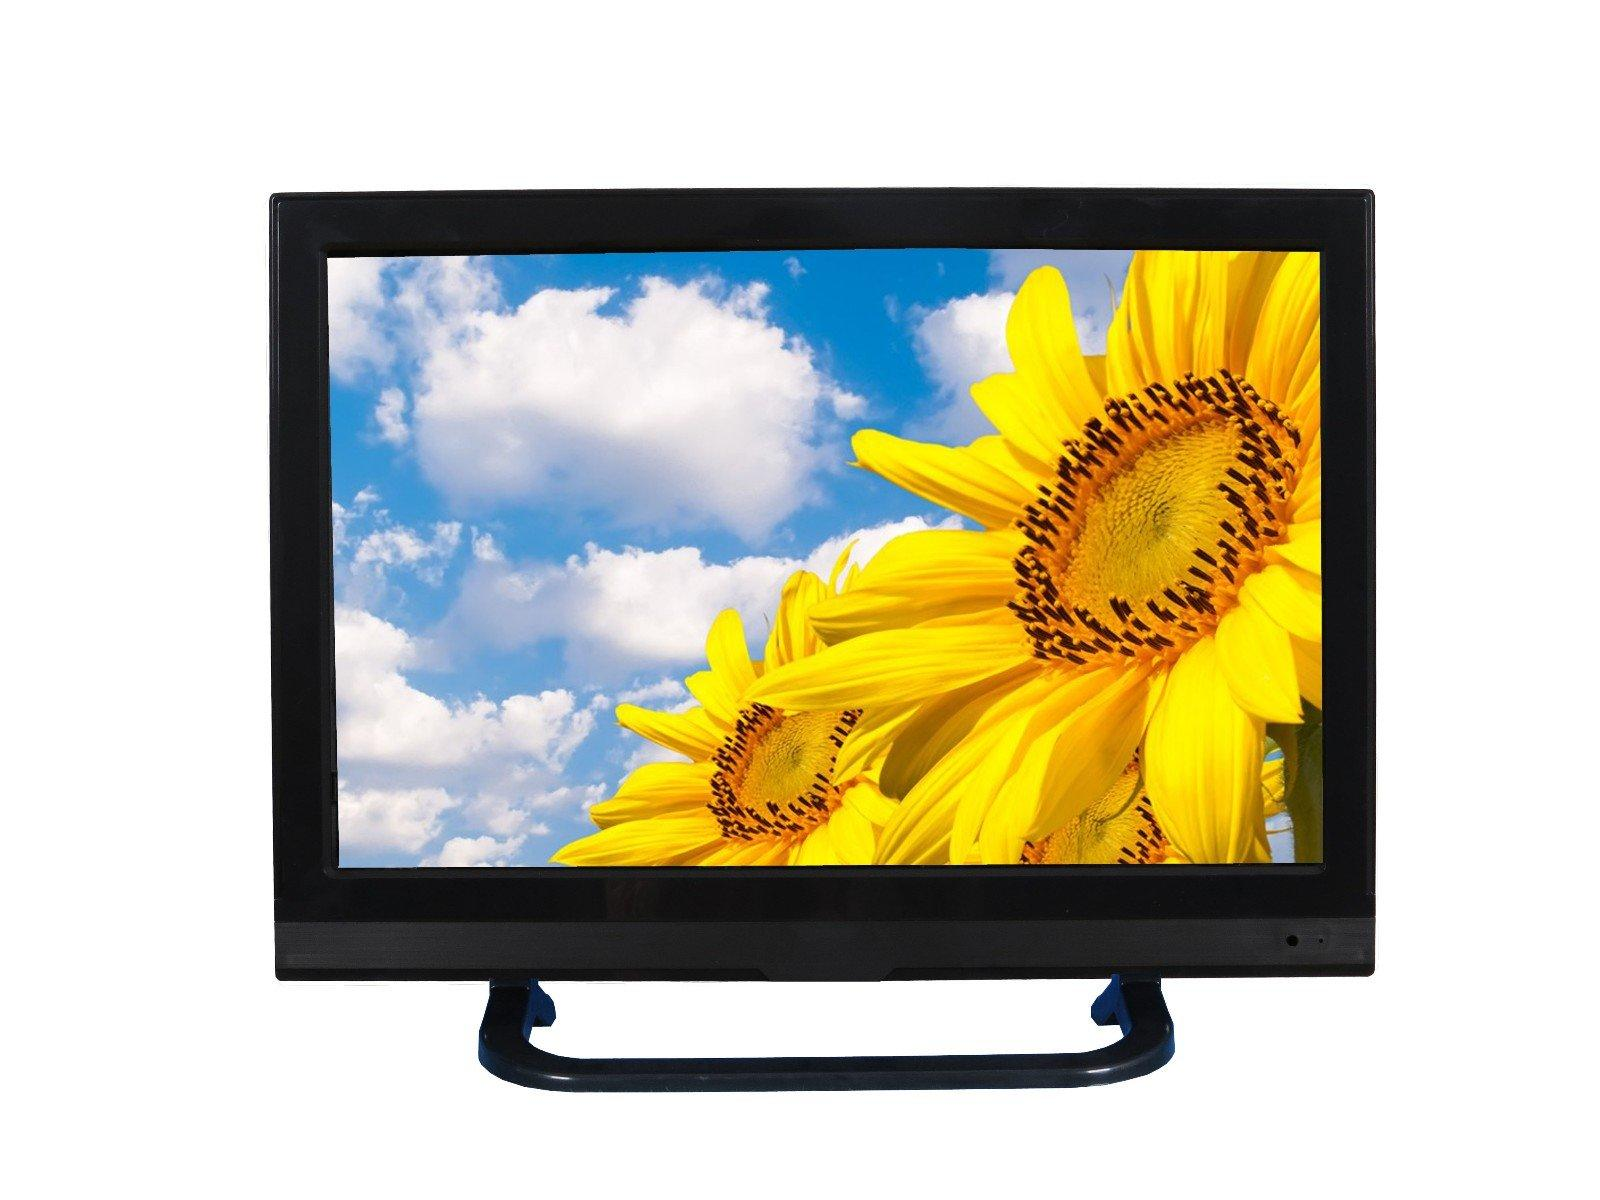 Xinyao LCD 20 inch hd tv manufacturer for lcd screen-1